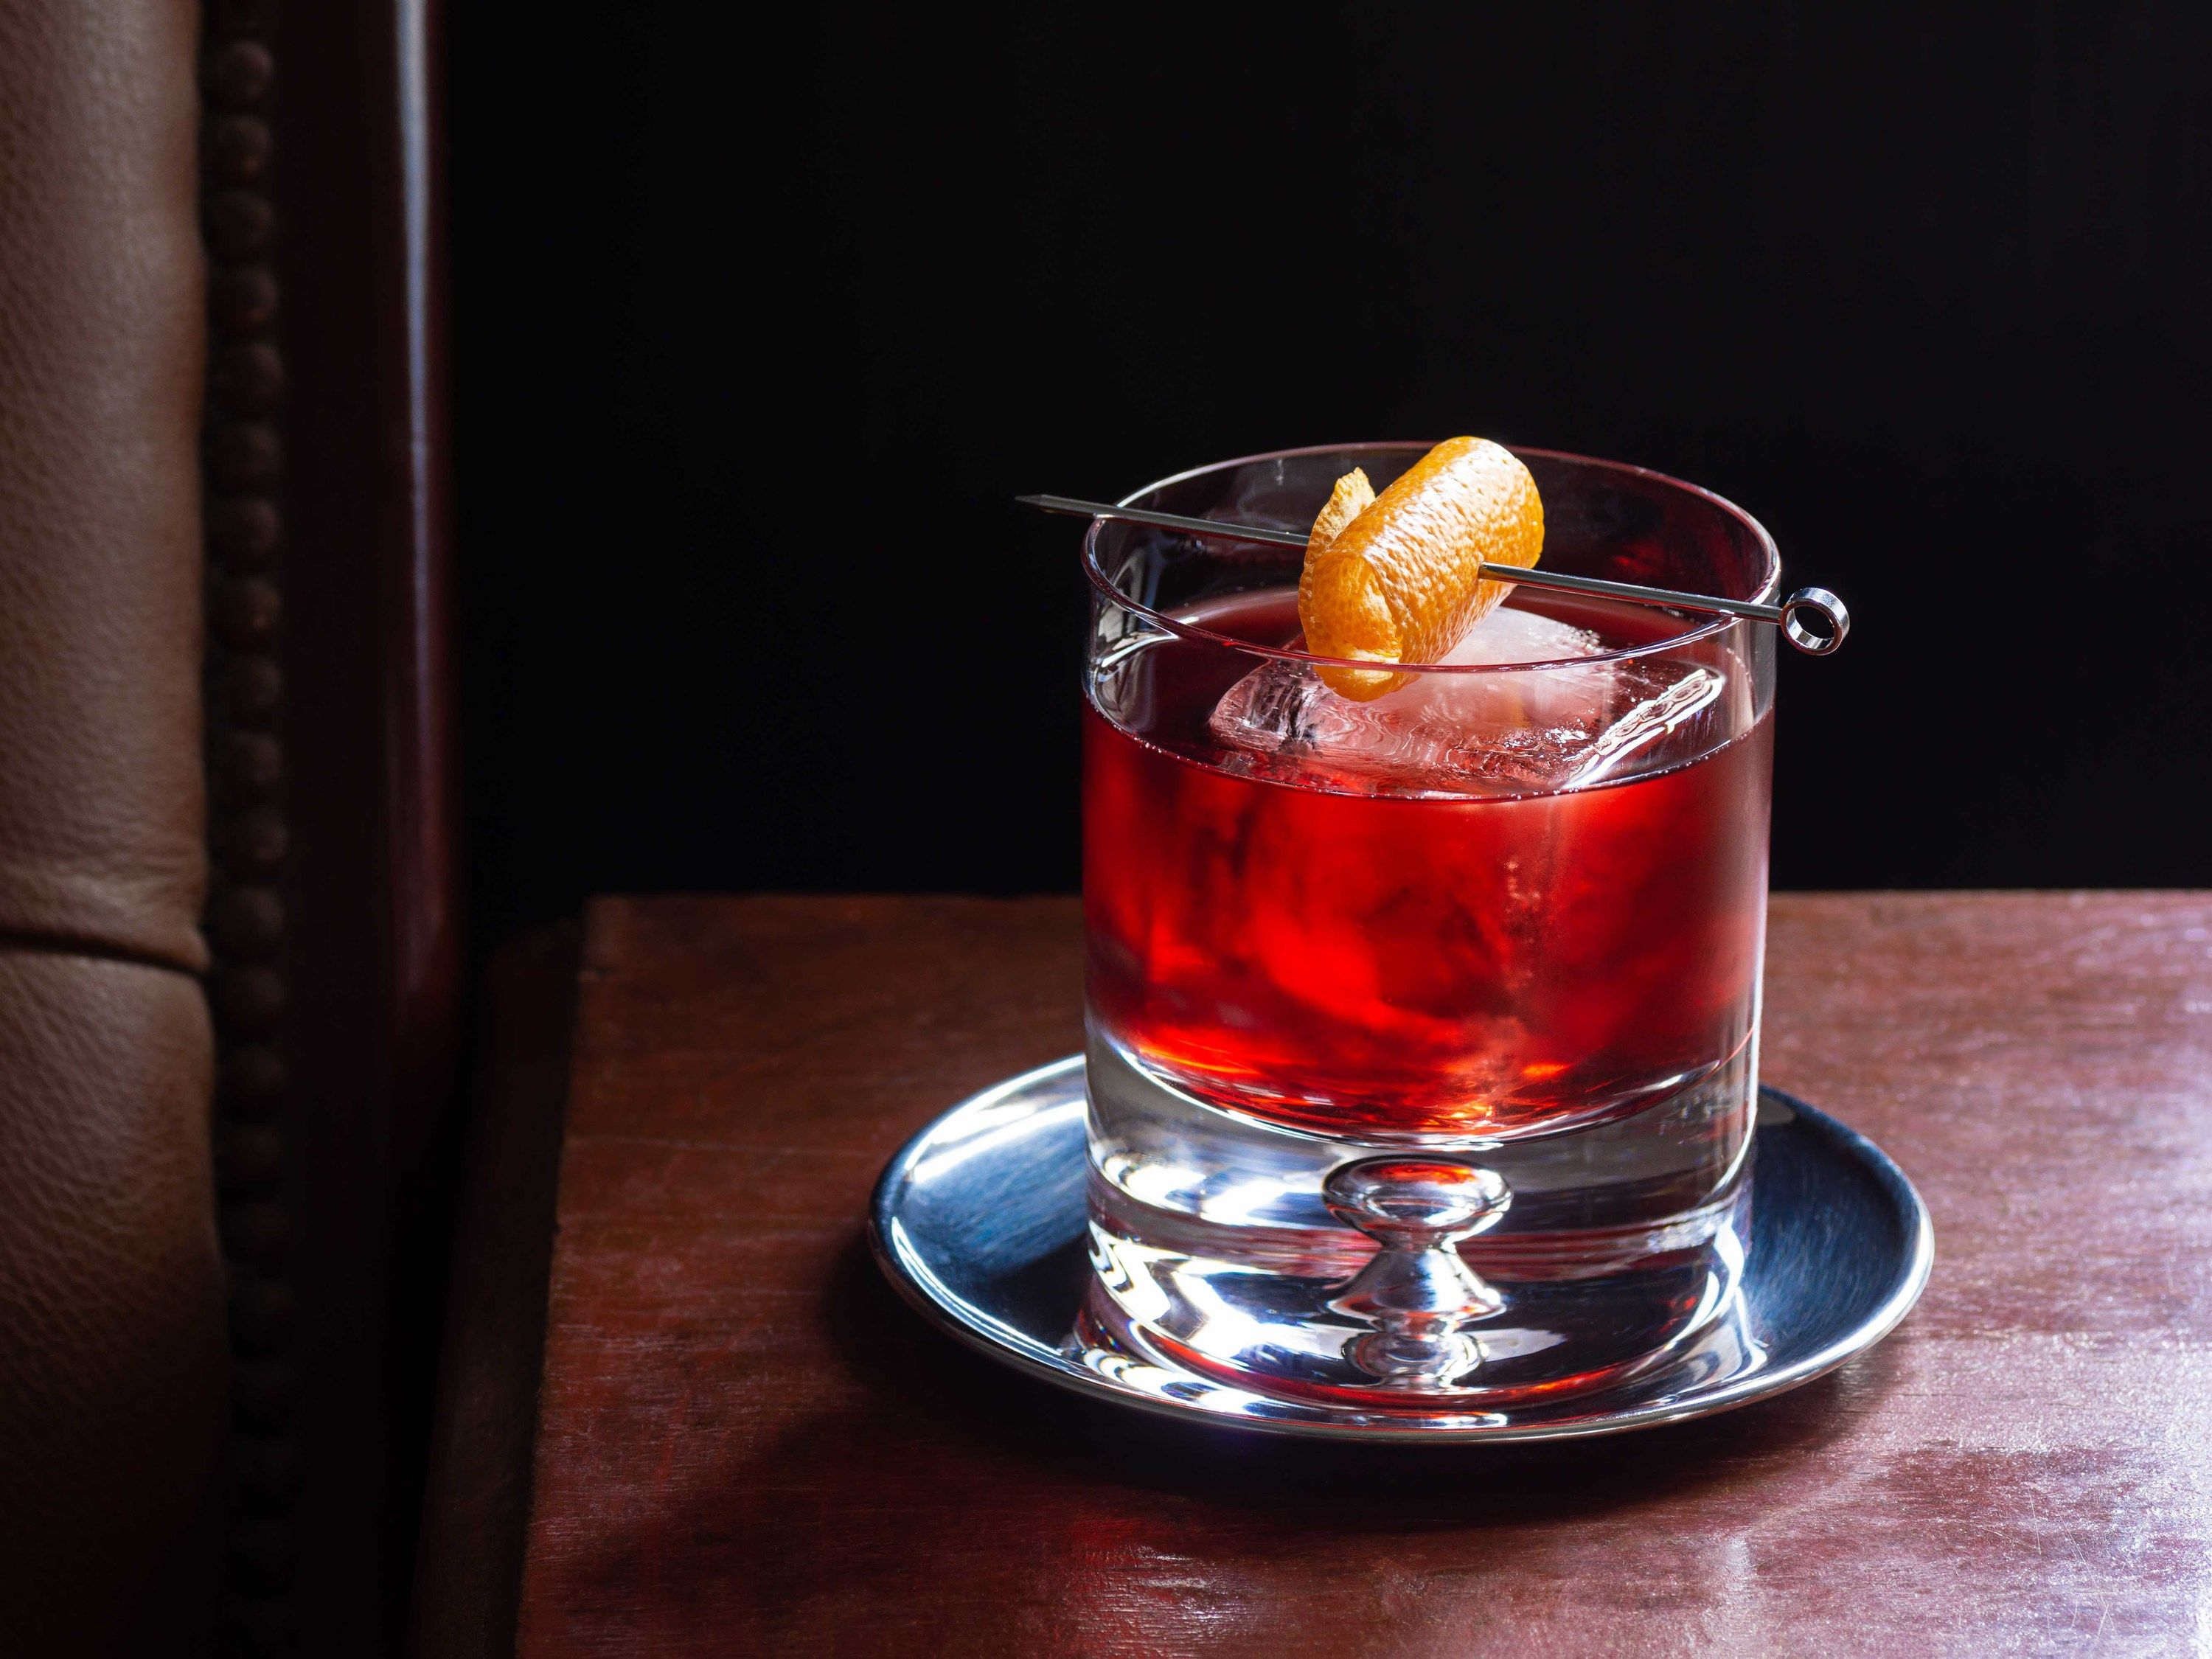 Ricetta Negroni Aperol.How To Make The Perfect Negroni At Home According To The Violet Hour Italian Cocktails Spicy Drinks Cocktail Recipes